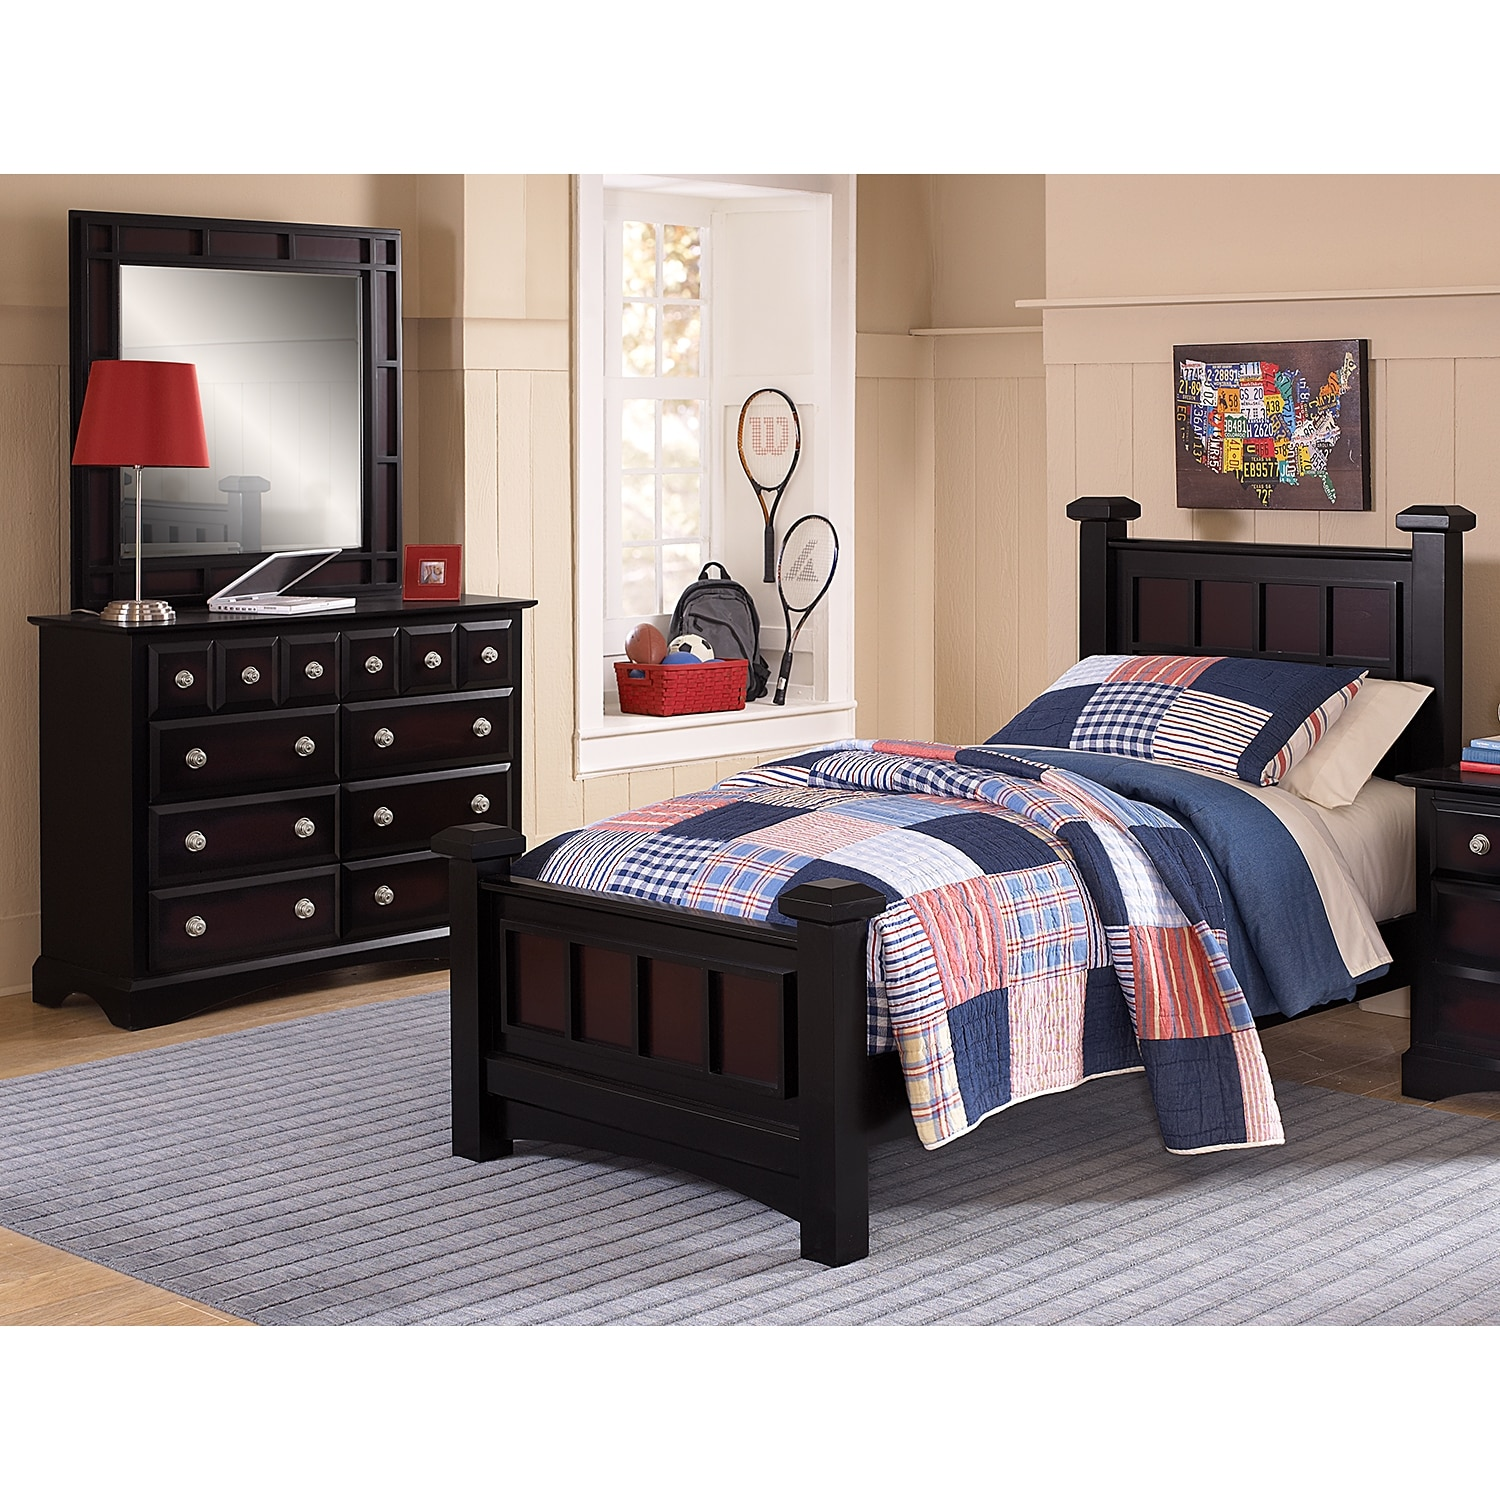 Winchester 5Piece Full Bedroom Set  Black and Burnished Merlot  Value City Furniture and